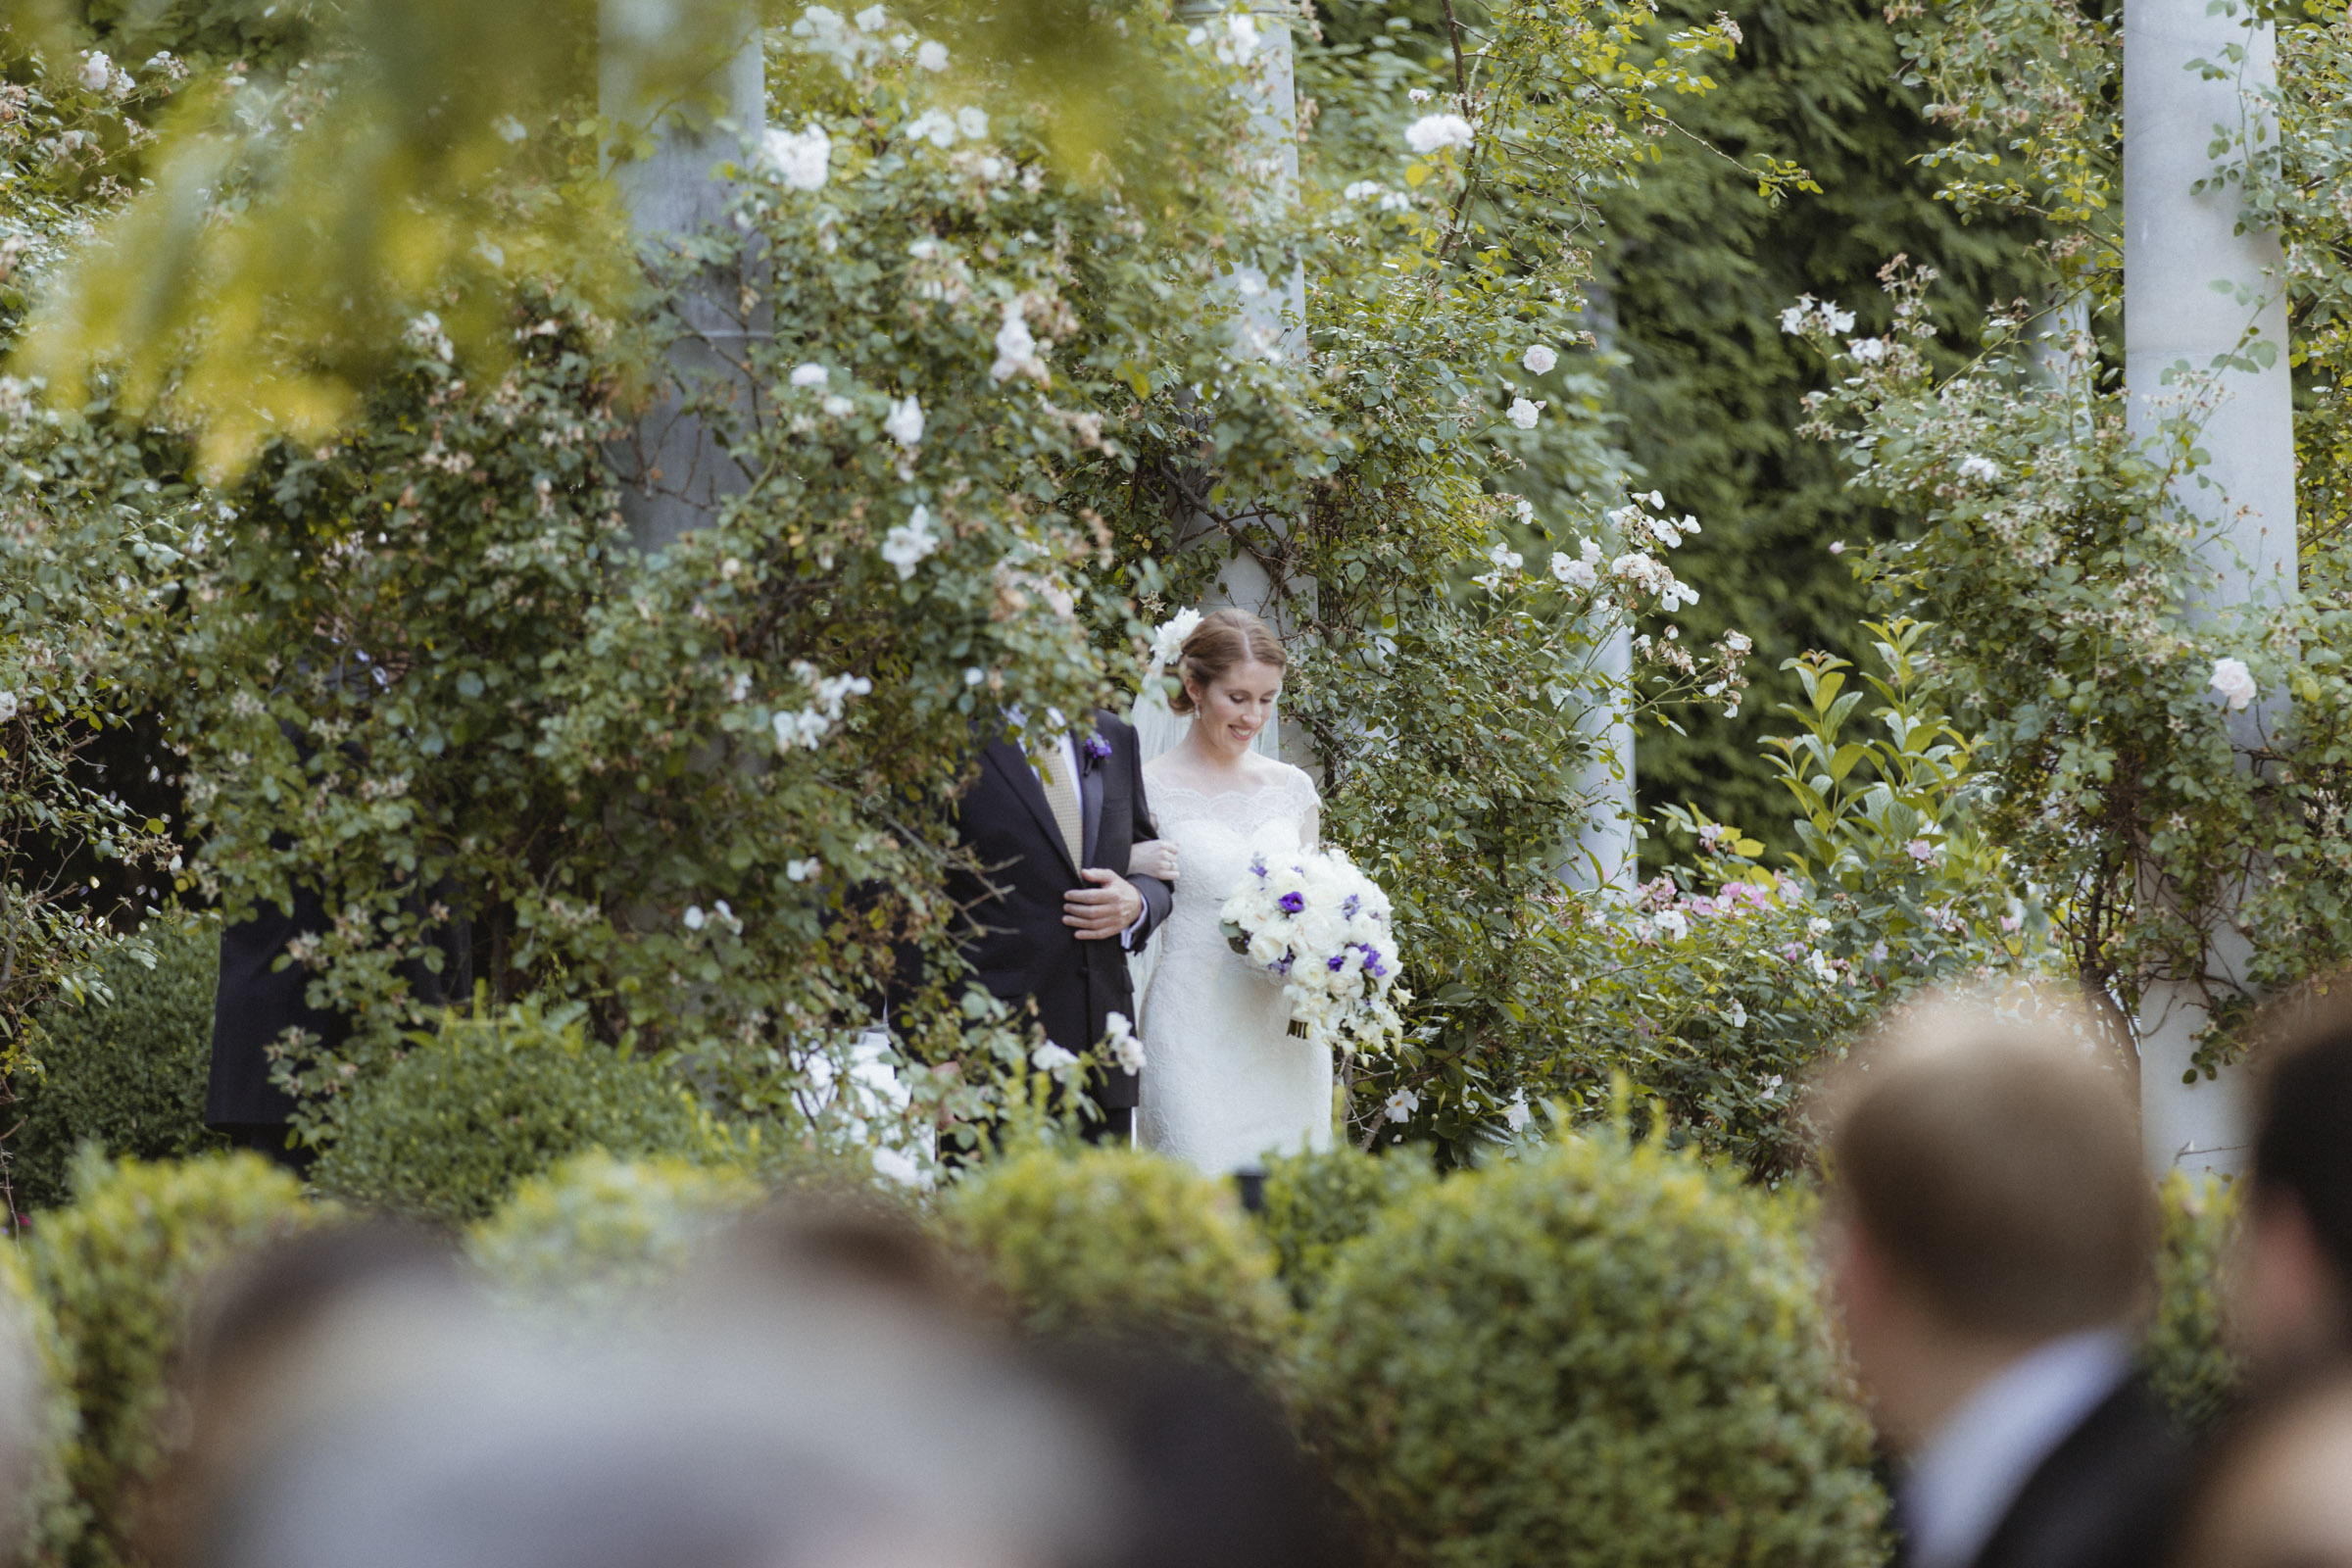 Bride appears in romantic garden before walking down the aisle - Estate at Florentine Gardens wedding - Hudson Valley Wedding - Kelsey & Anish's wedding - Amy Sims Photography